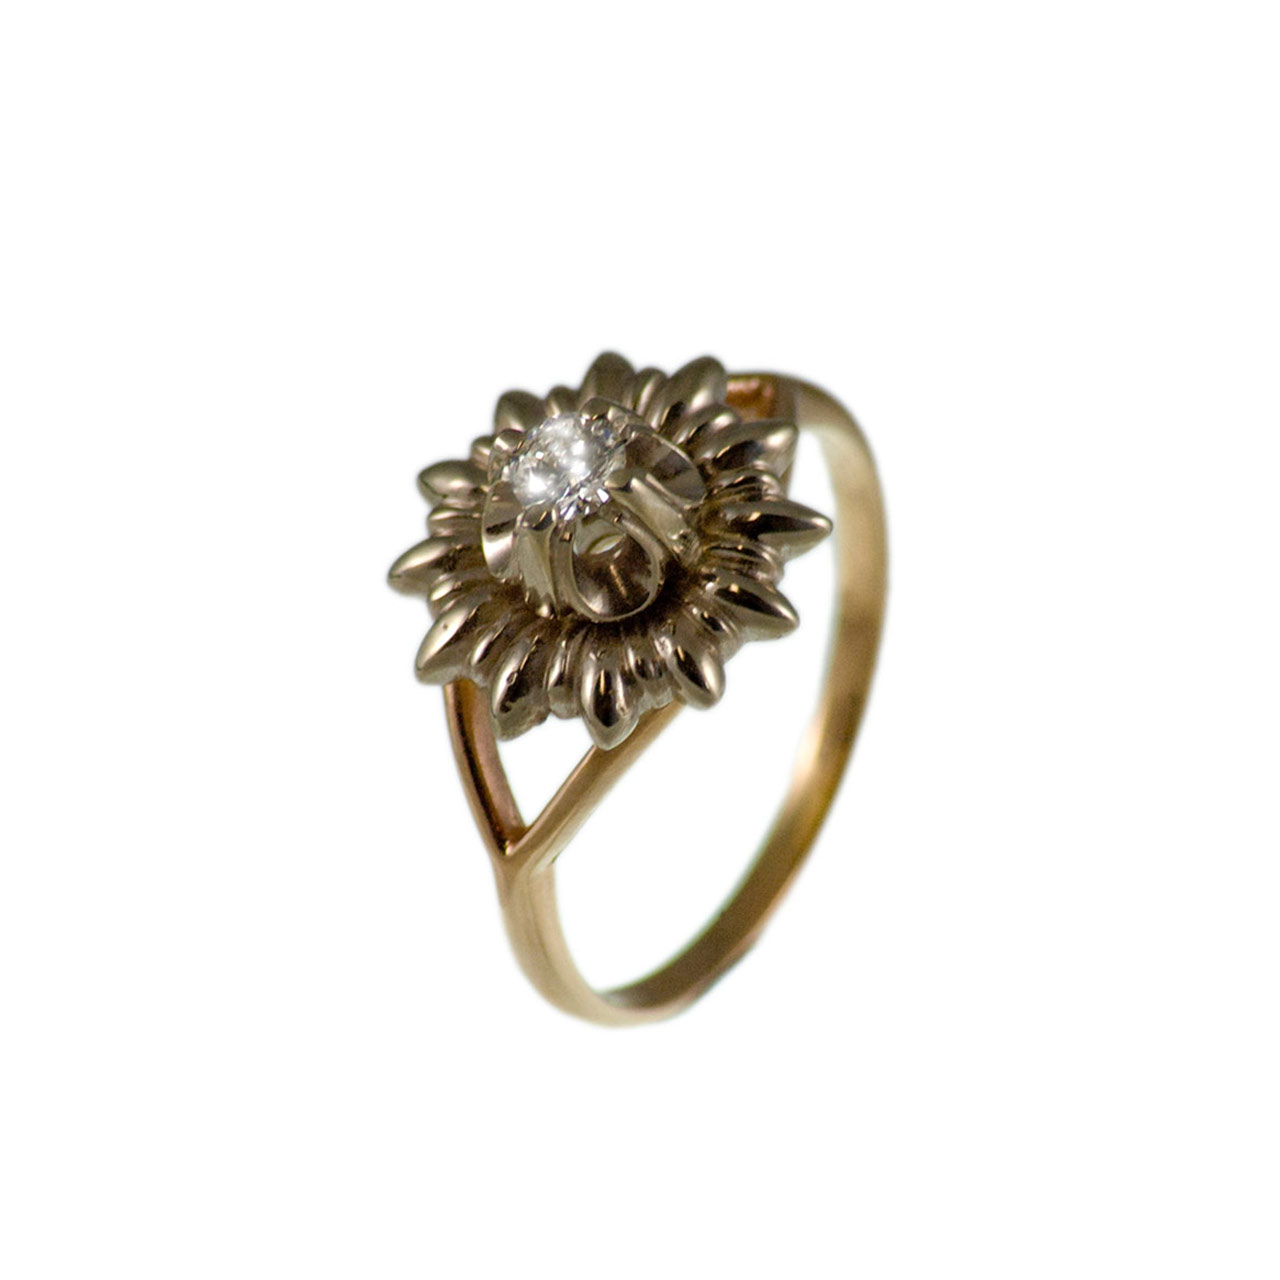 Water Lily-inspired Diamond Ring